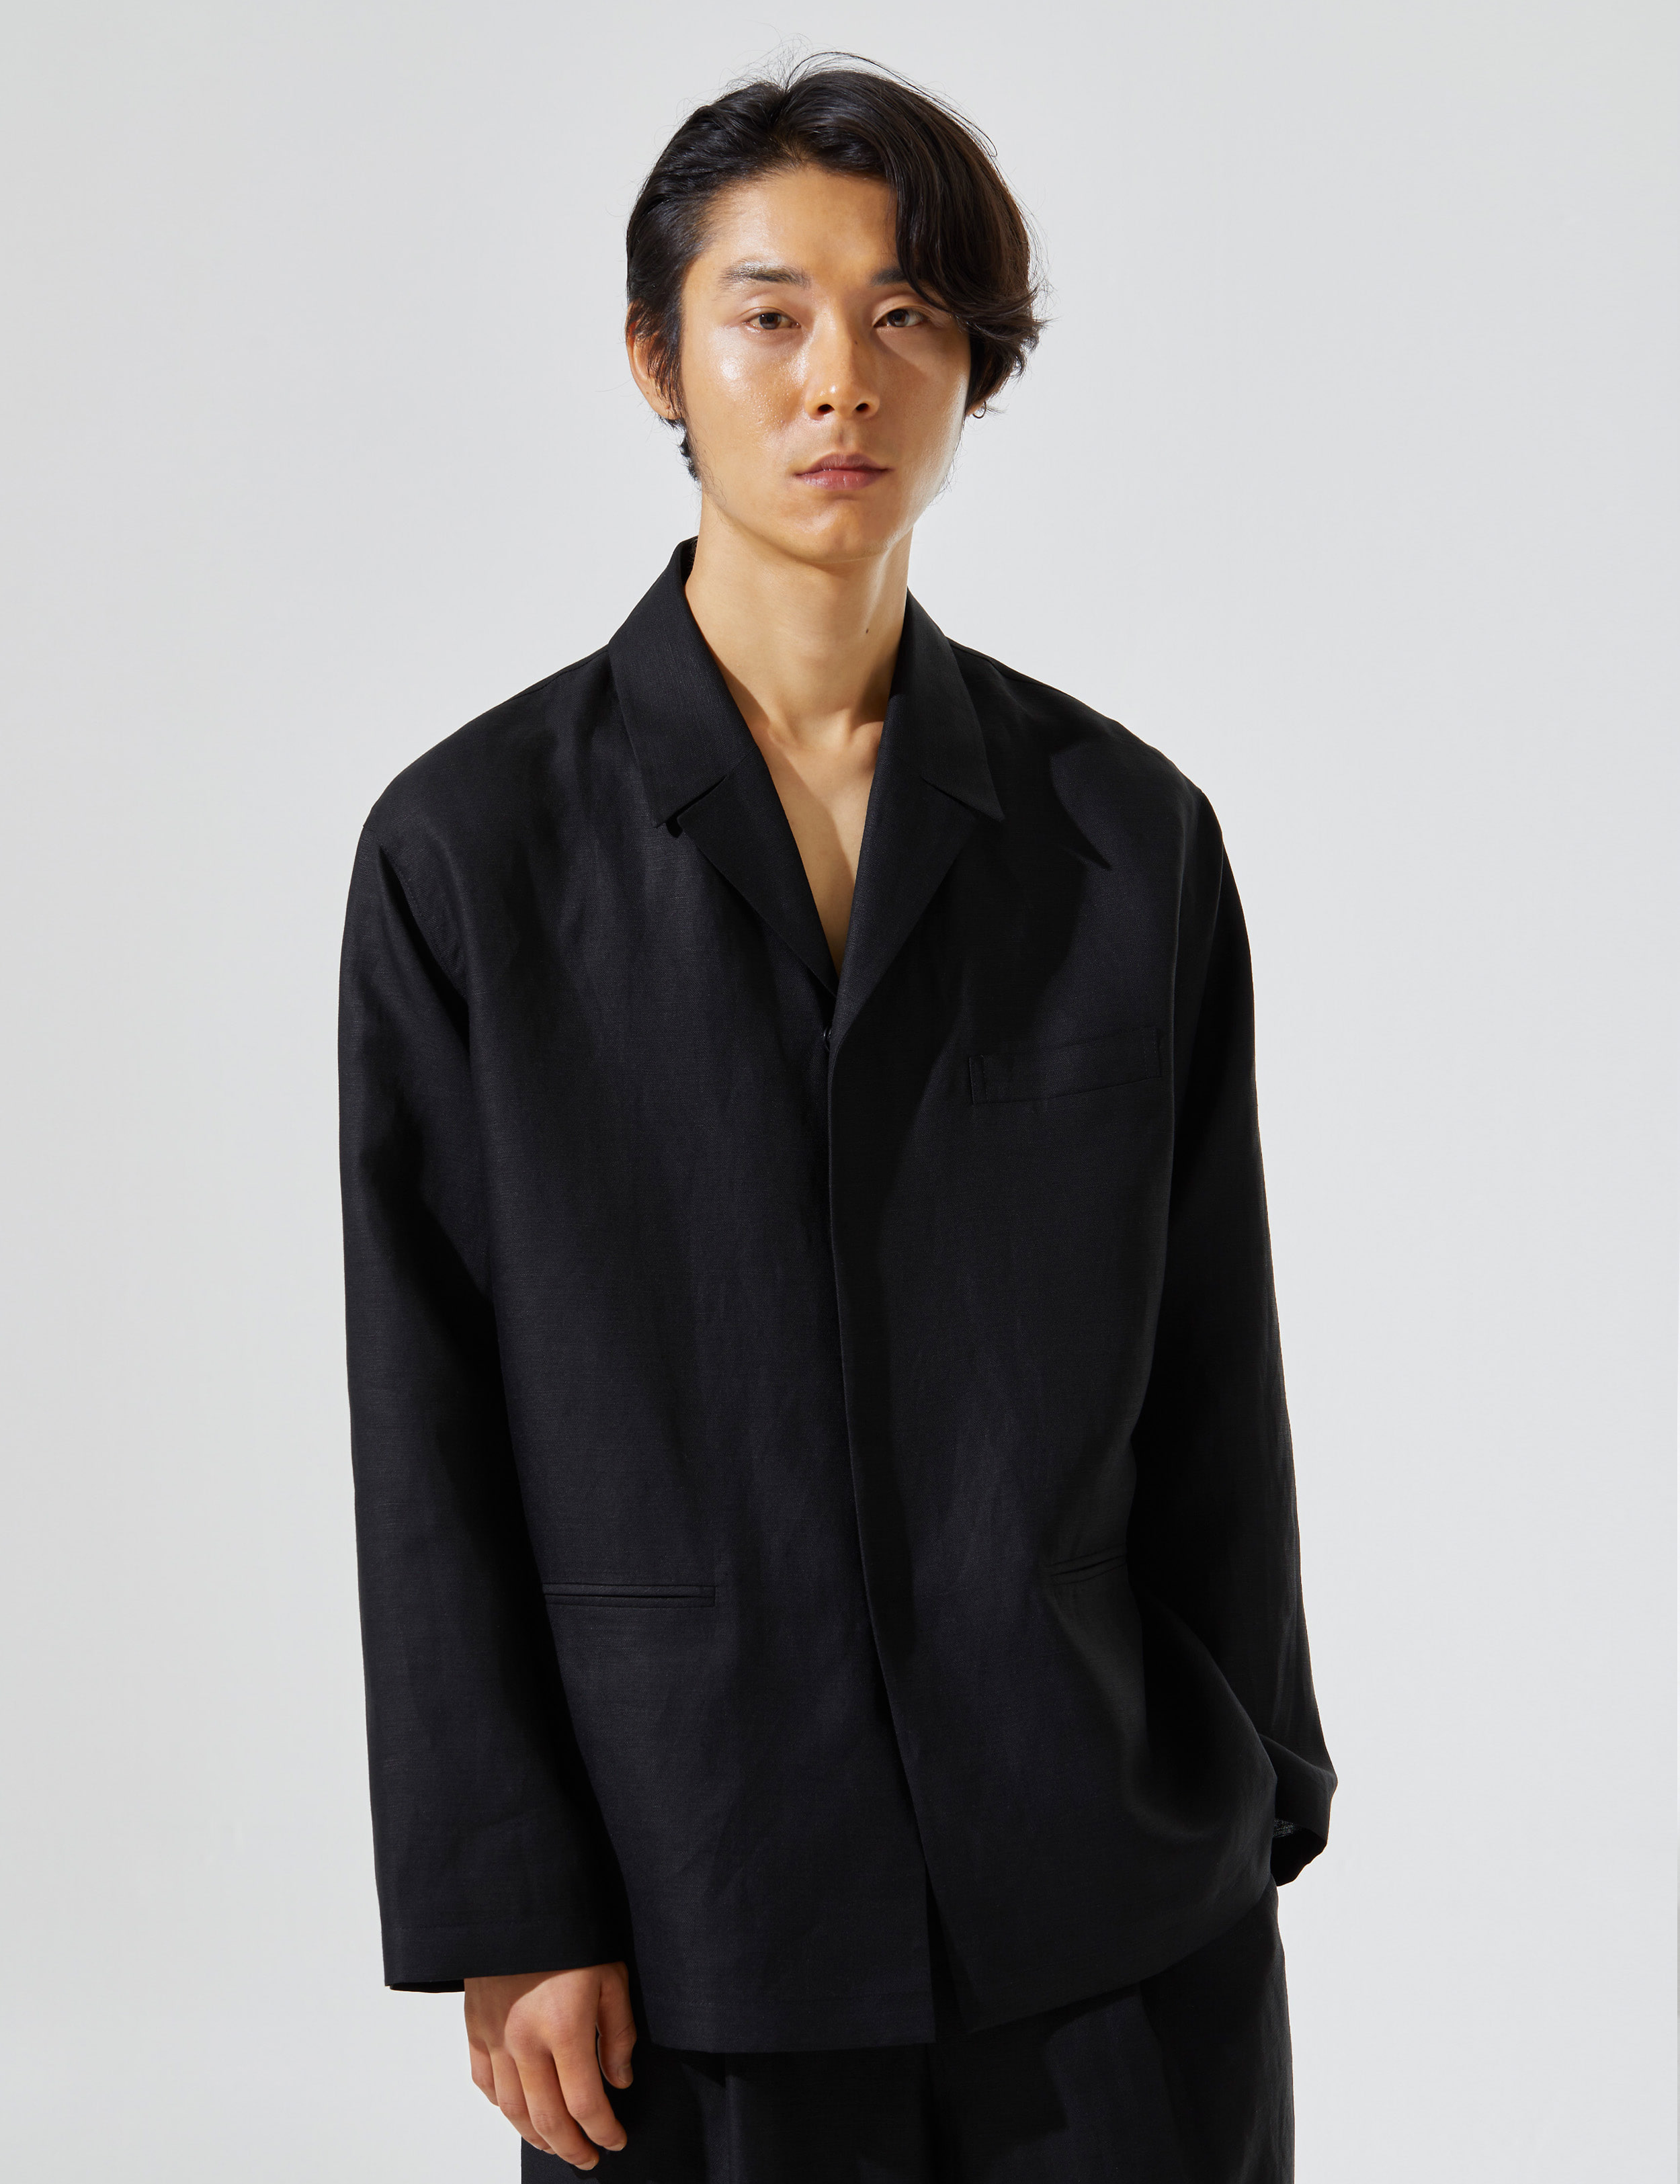 N.7 Shirt-jacket Black